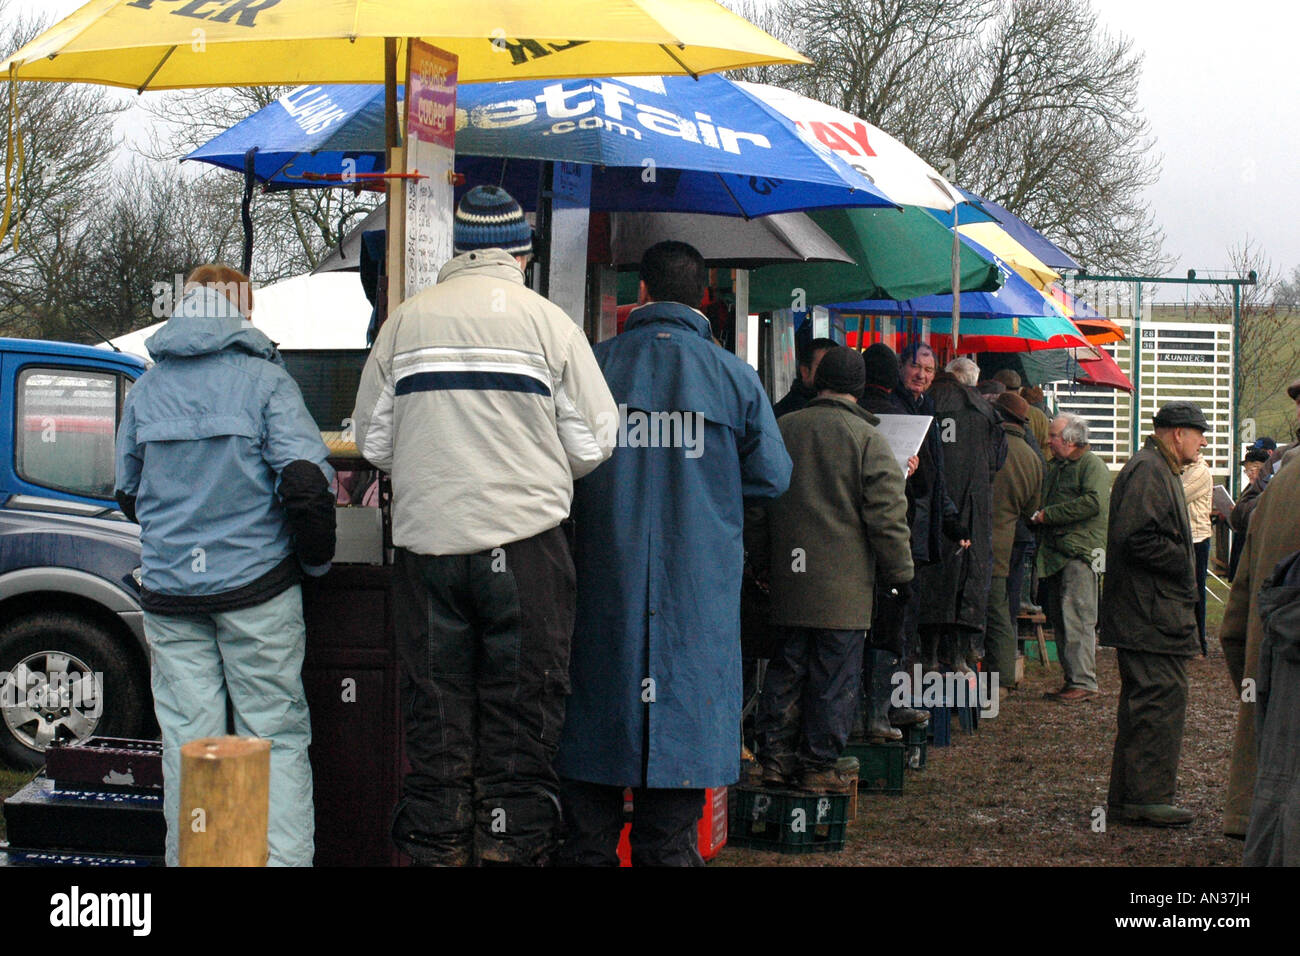 pic martin phelps 14 01 06 barbury castle point to point bookies Stock Photo